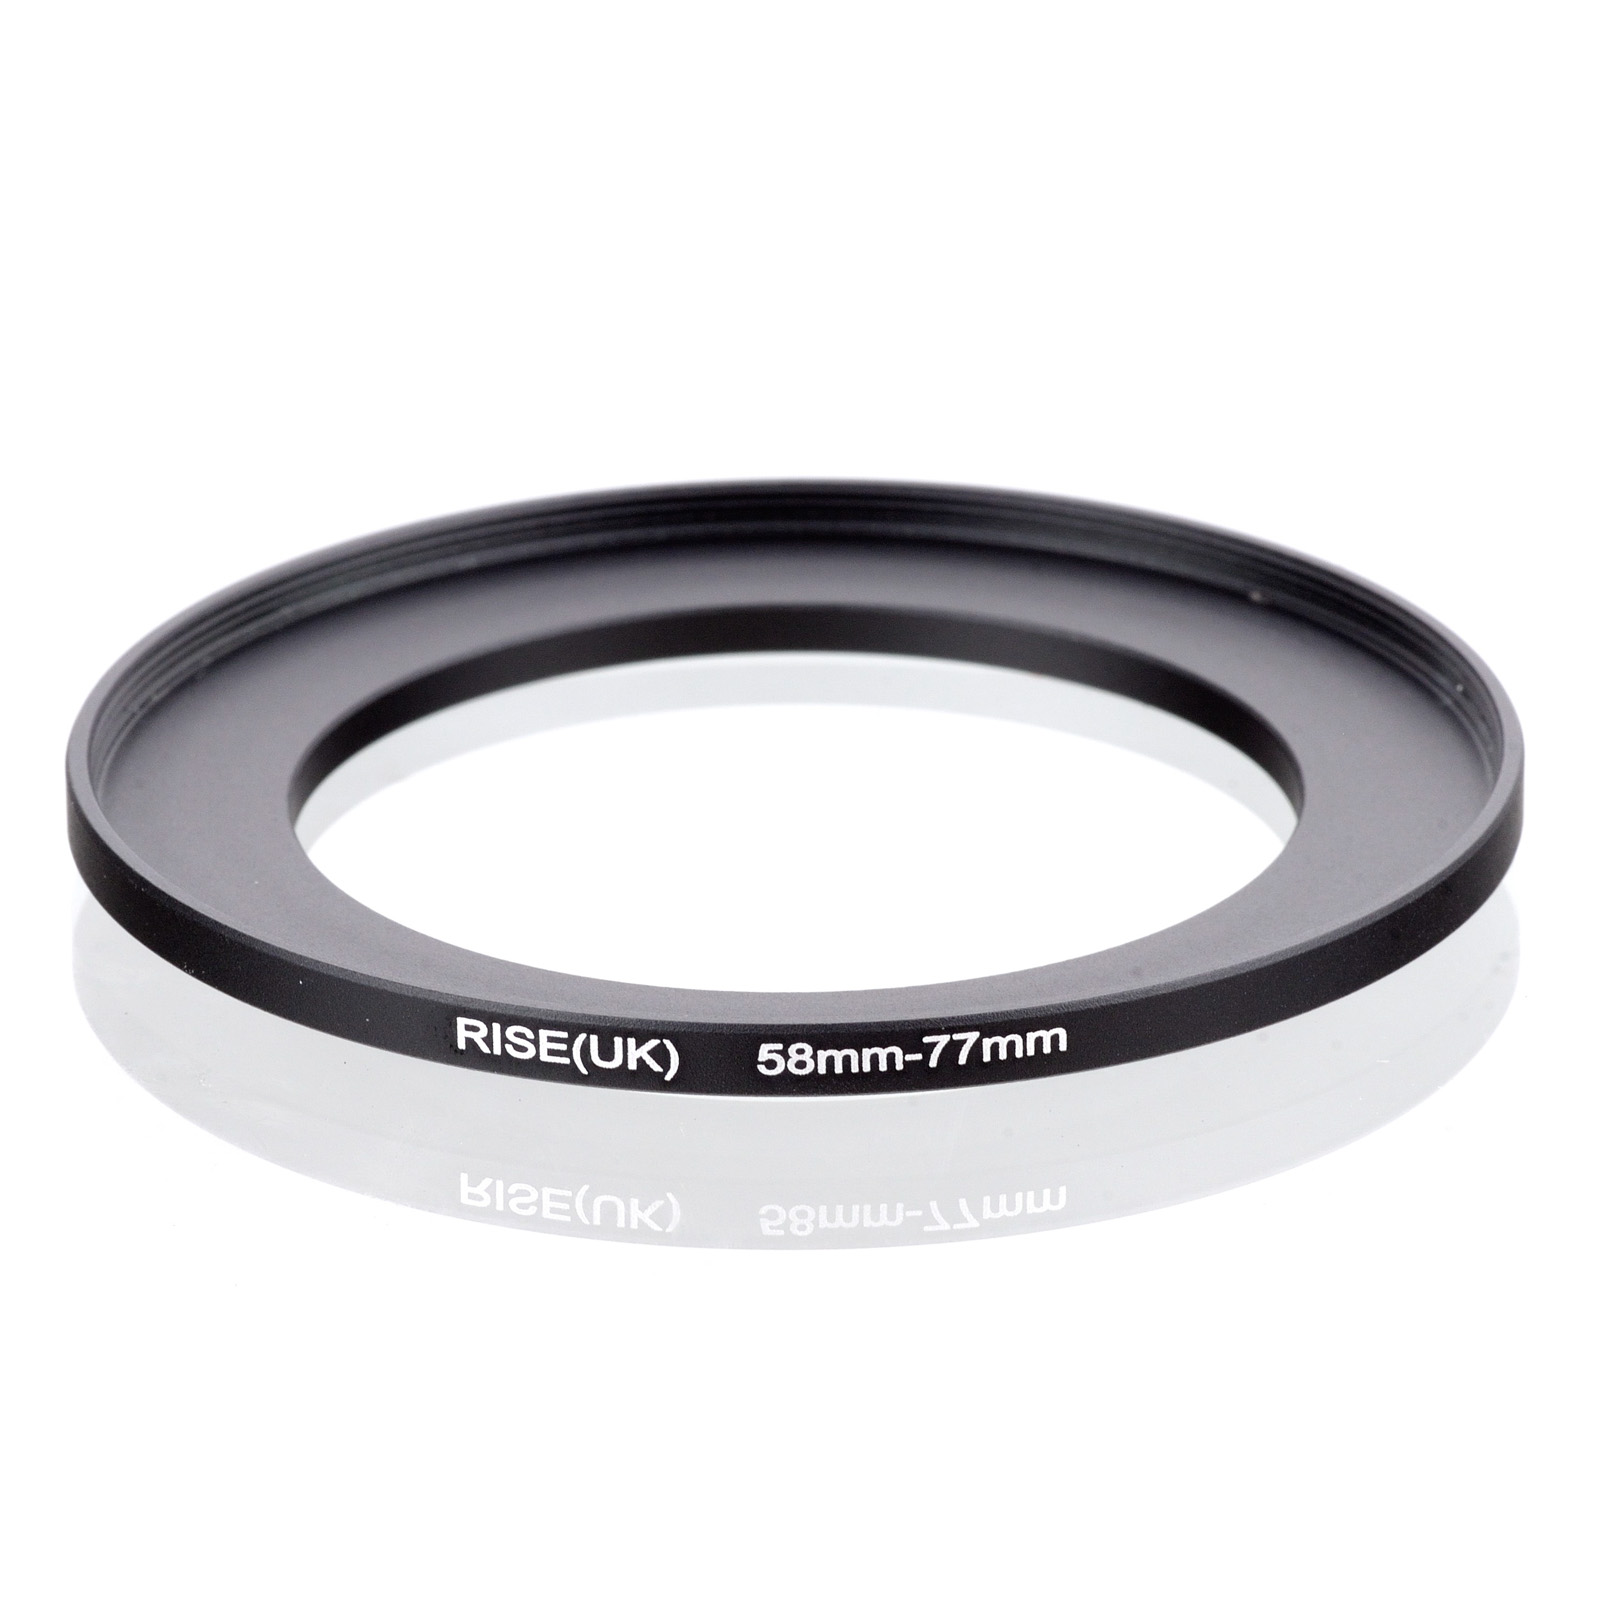 RISE(UK) 58mm-77mm 58-77 Mm 58 To 77 Step Up Filter Ring Adapter